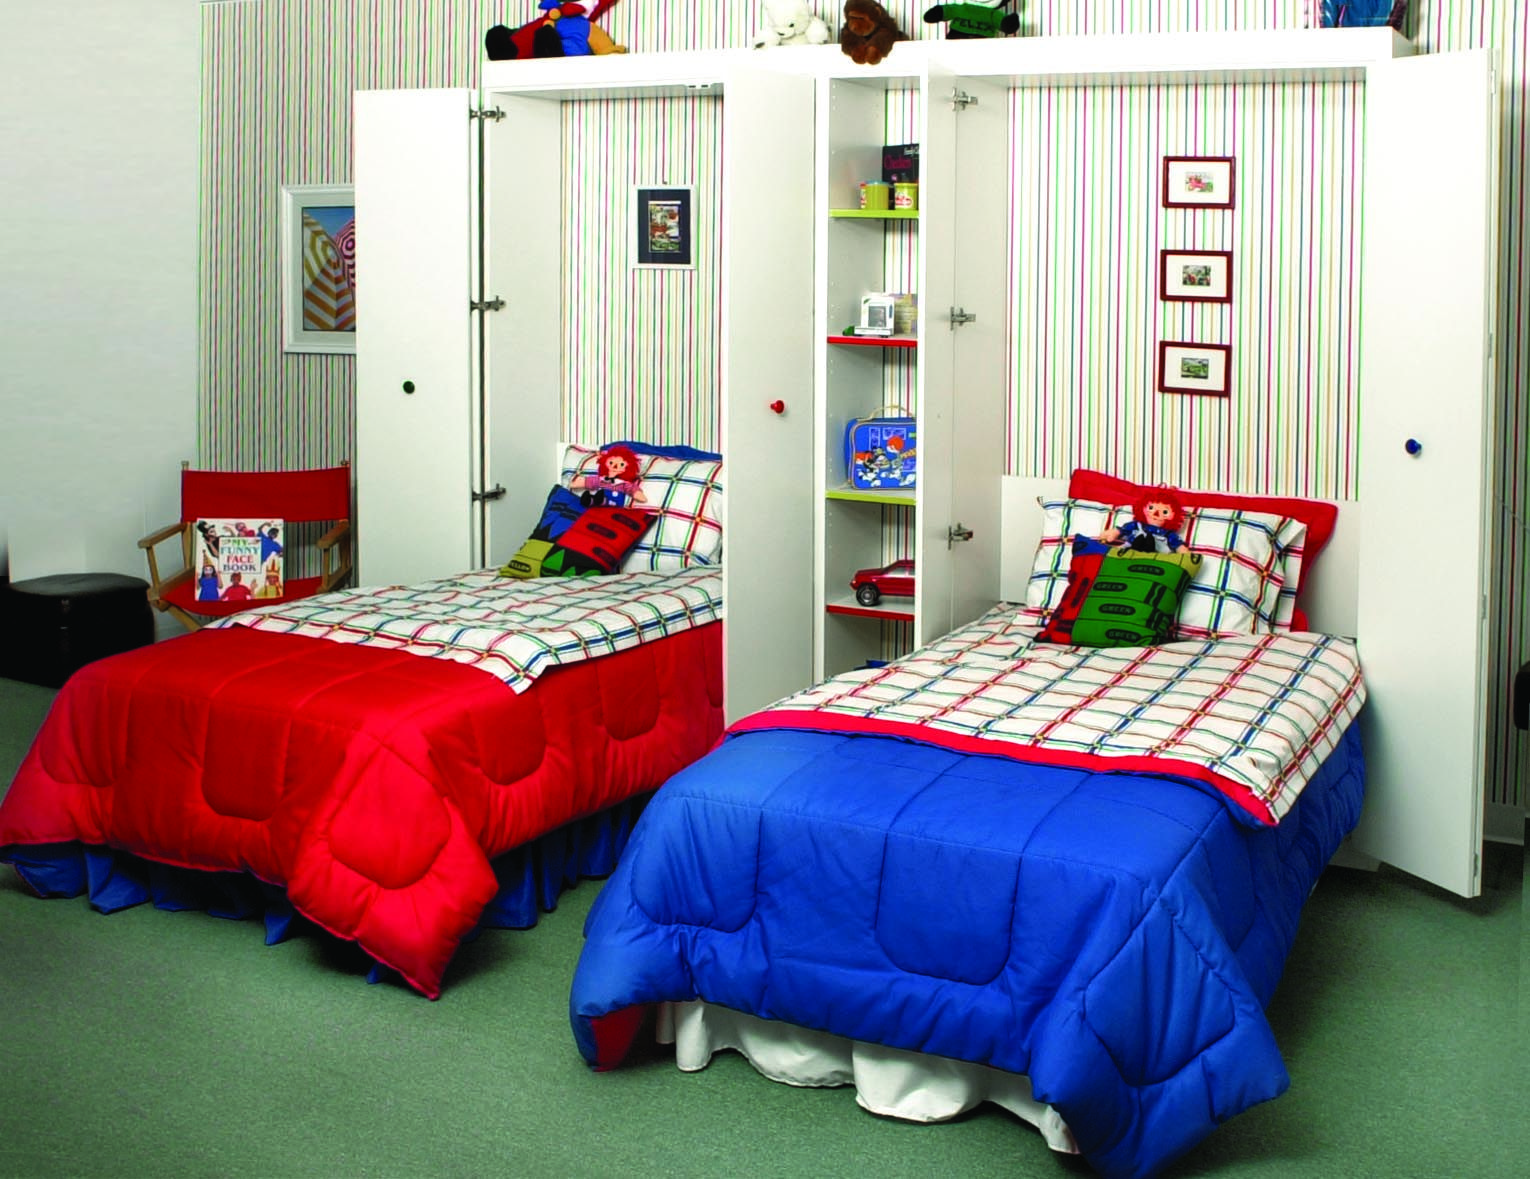 Space saving kids beds kids bed design bed design and for Kids bed design